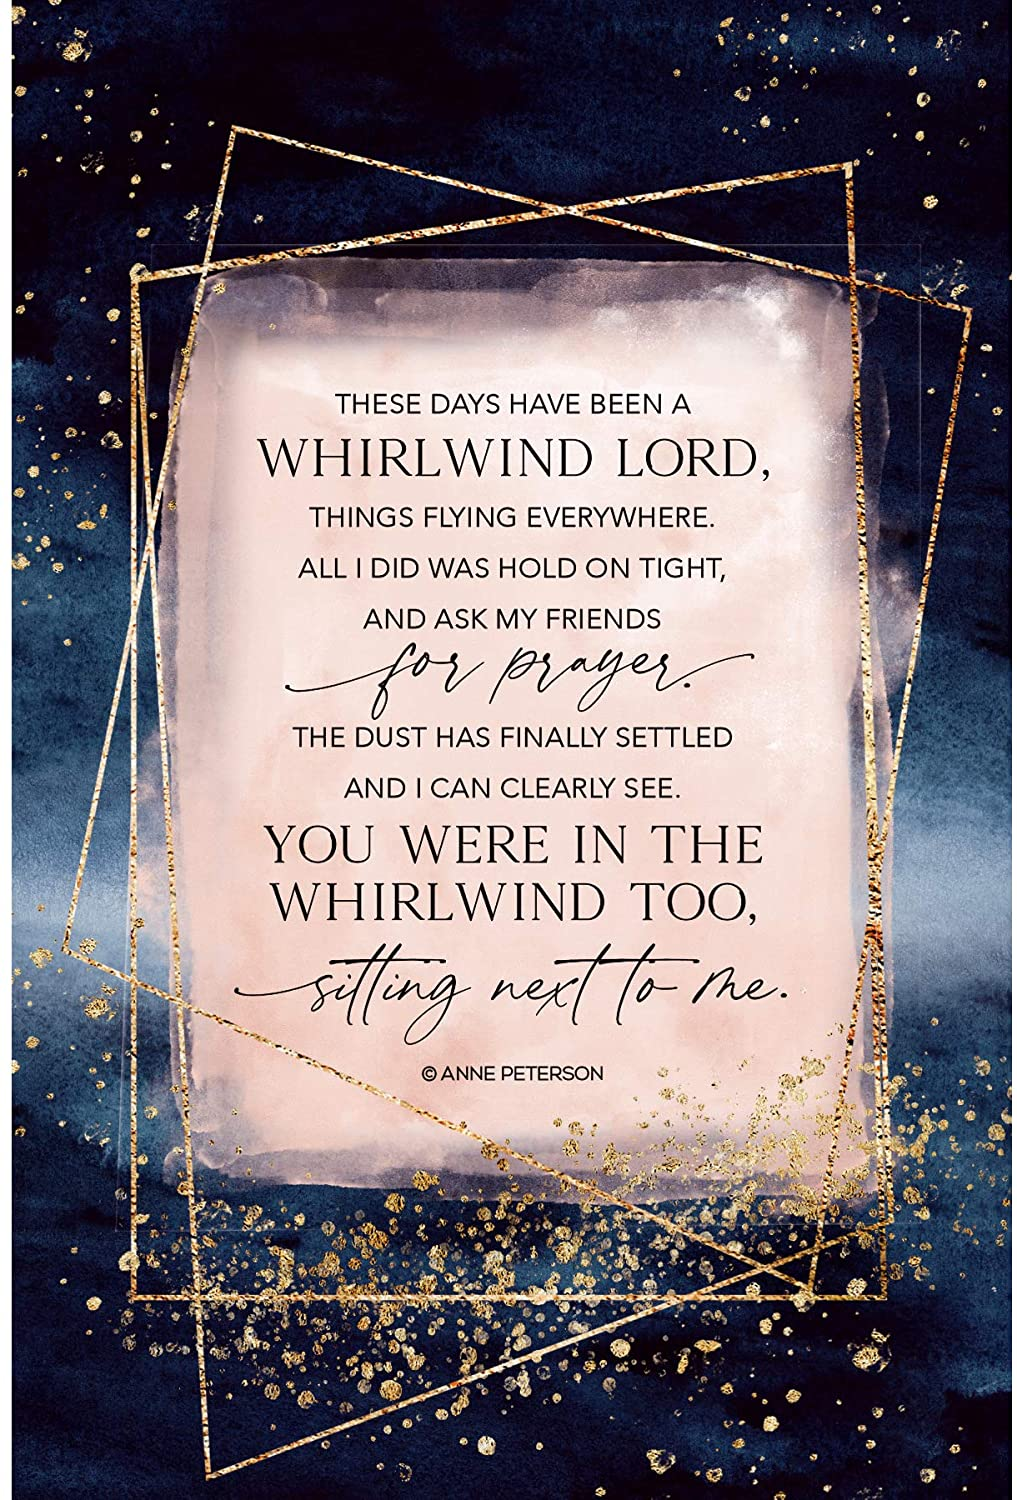 Wood Plaque with Inspiring Quotes 6 inches x 9 inches - Elegant Vertical Frame Wall & Tabletop Decoration | Easel & Hanging Hook | These Days Have Been a Whirlwind Lord, Things Flying Everywhere